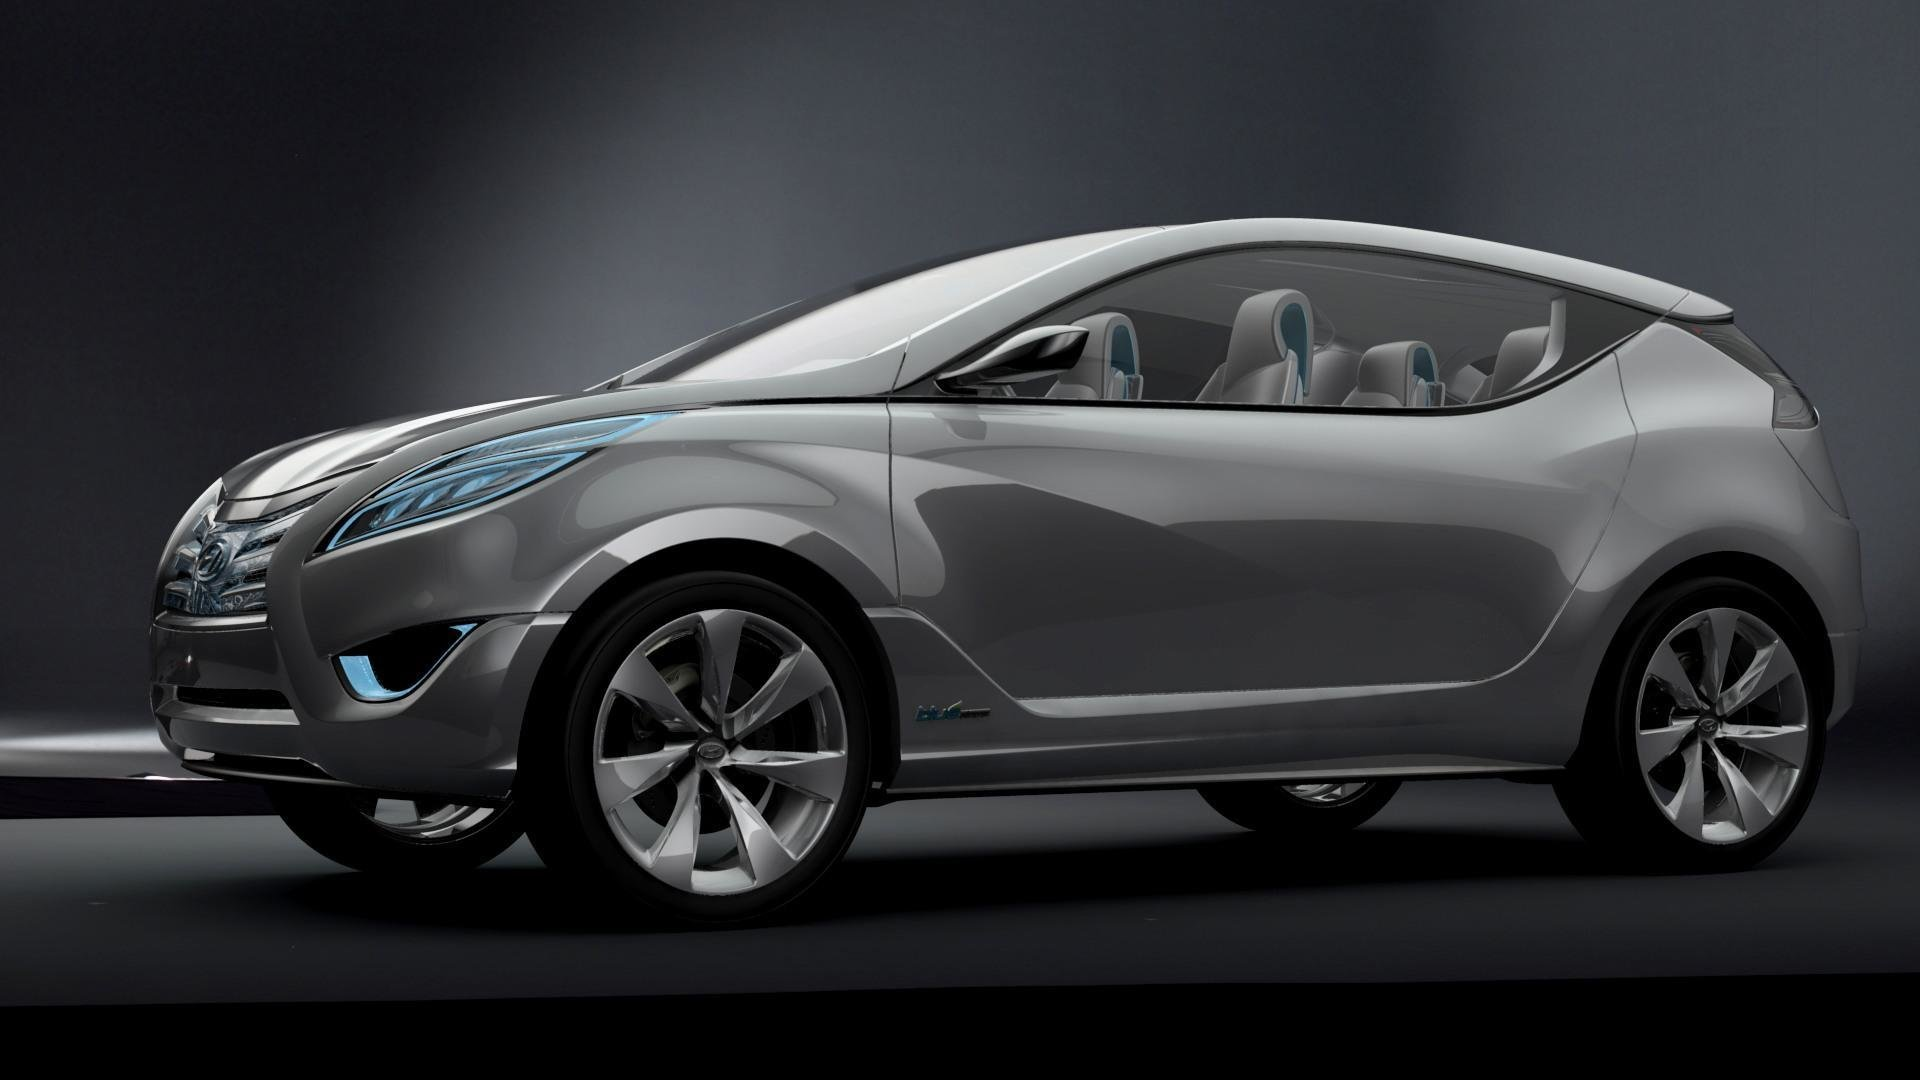 New 2009 Hyundai Hd 11 Nuvis Concept Image Https Www On This Month